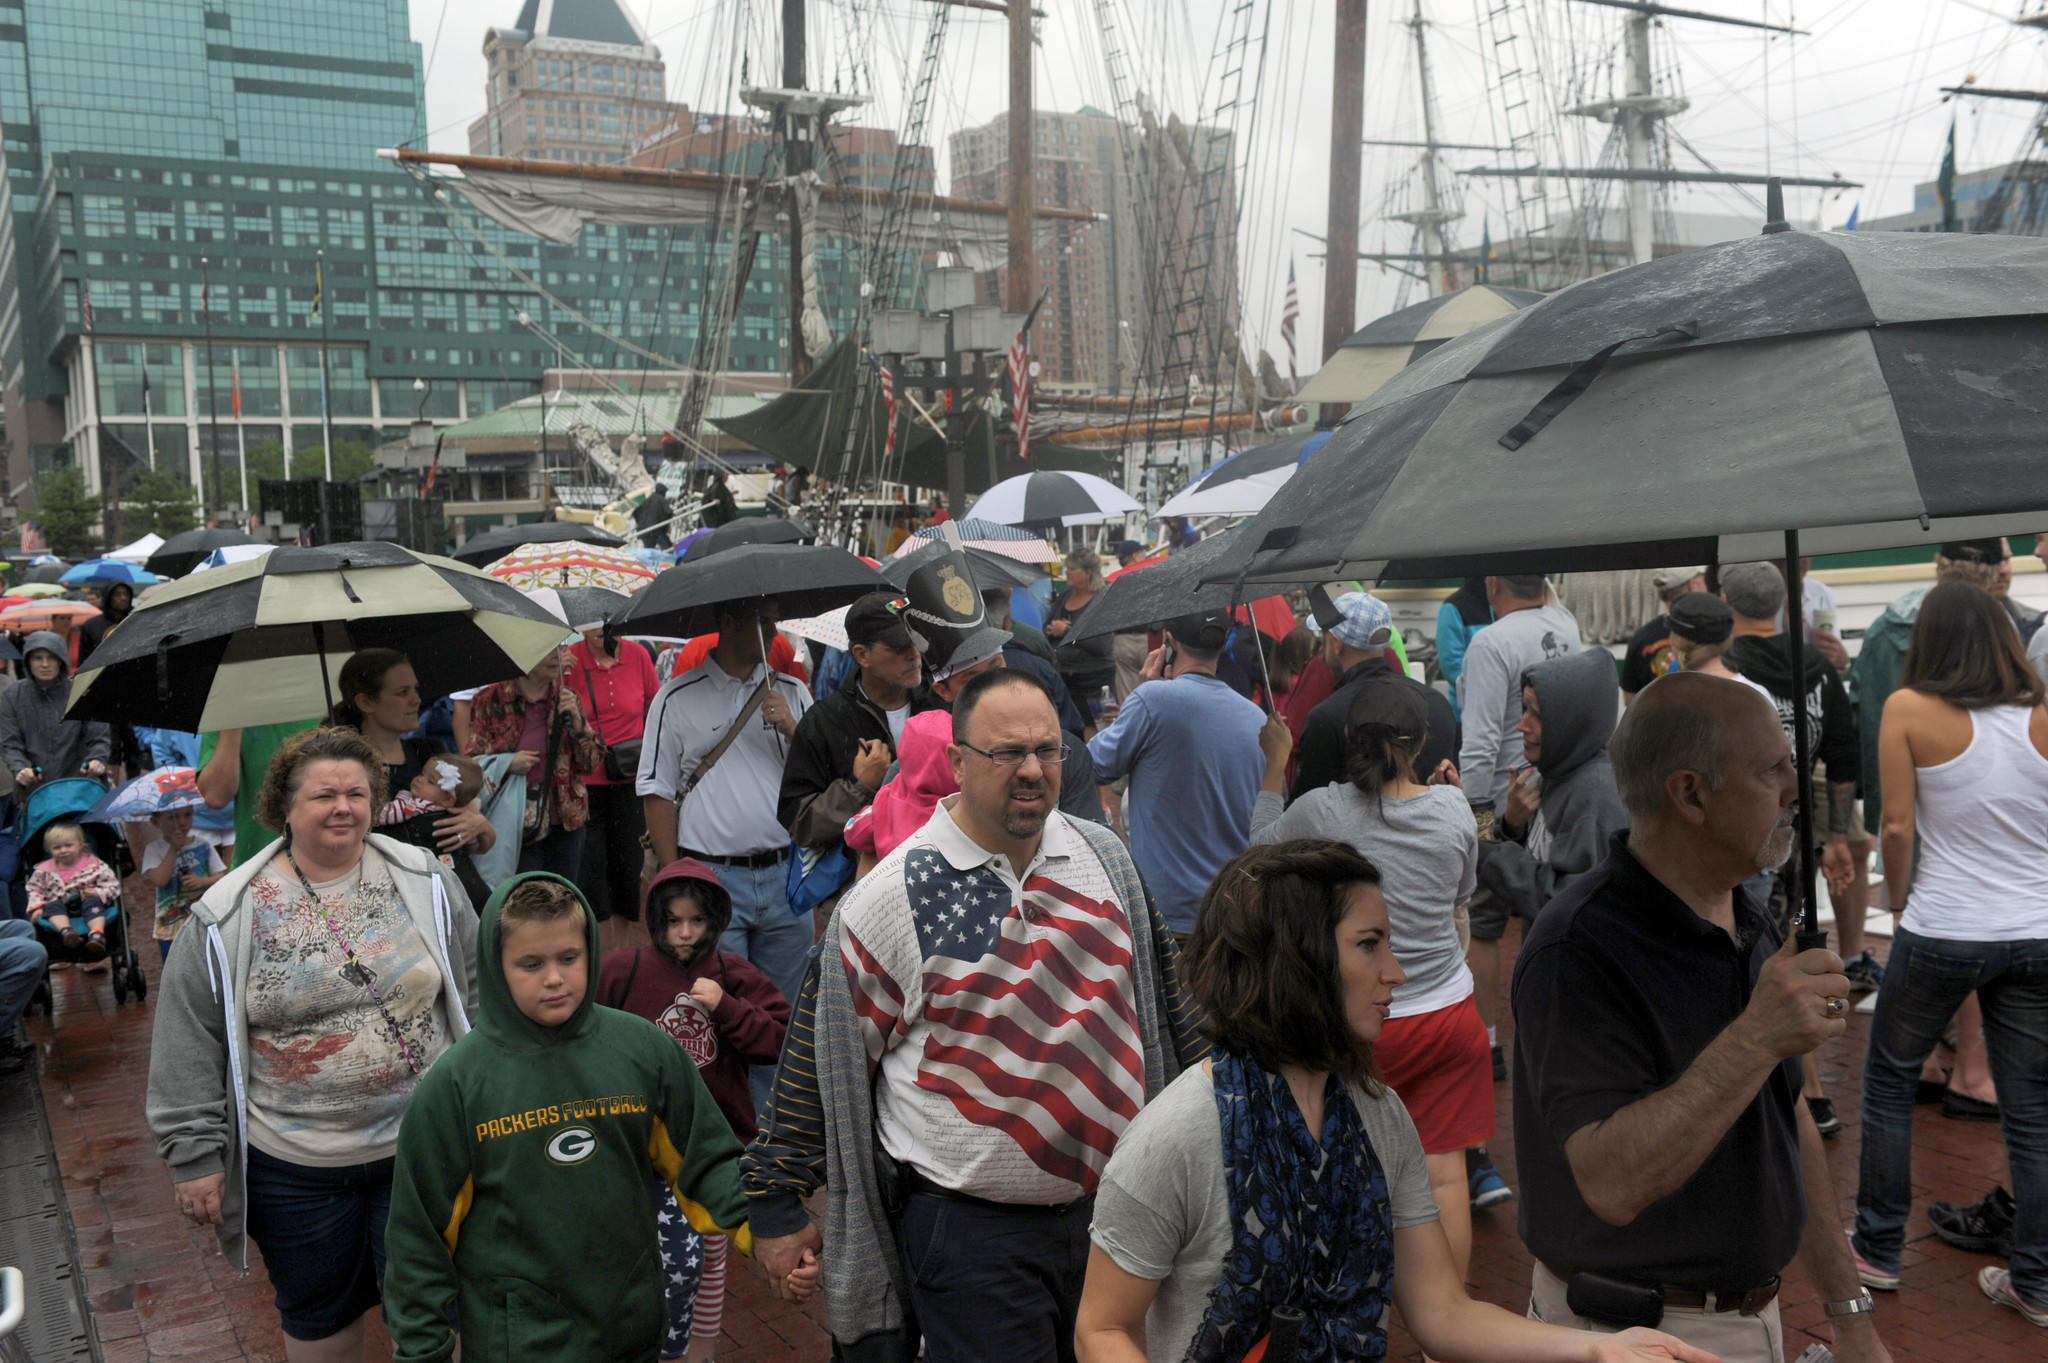 A light rain falls Saturday afternoon during the Star-Spangled Spectacular as people walk along the Inner Harbor promenade.